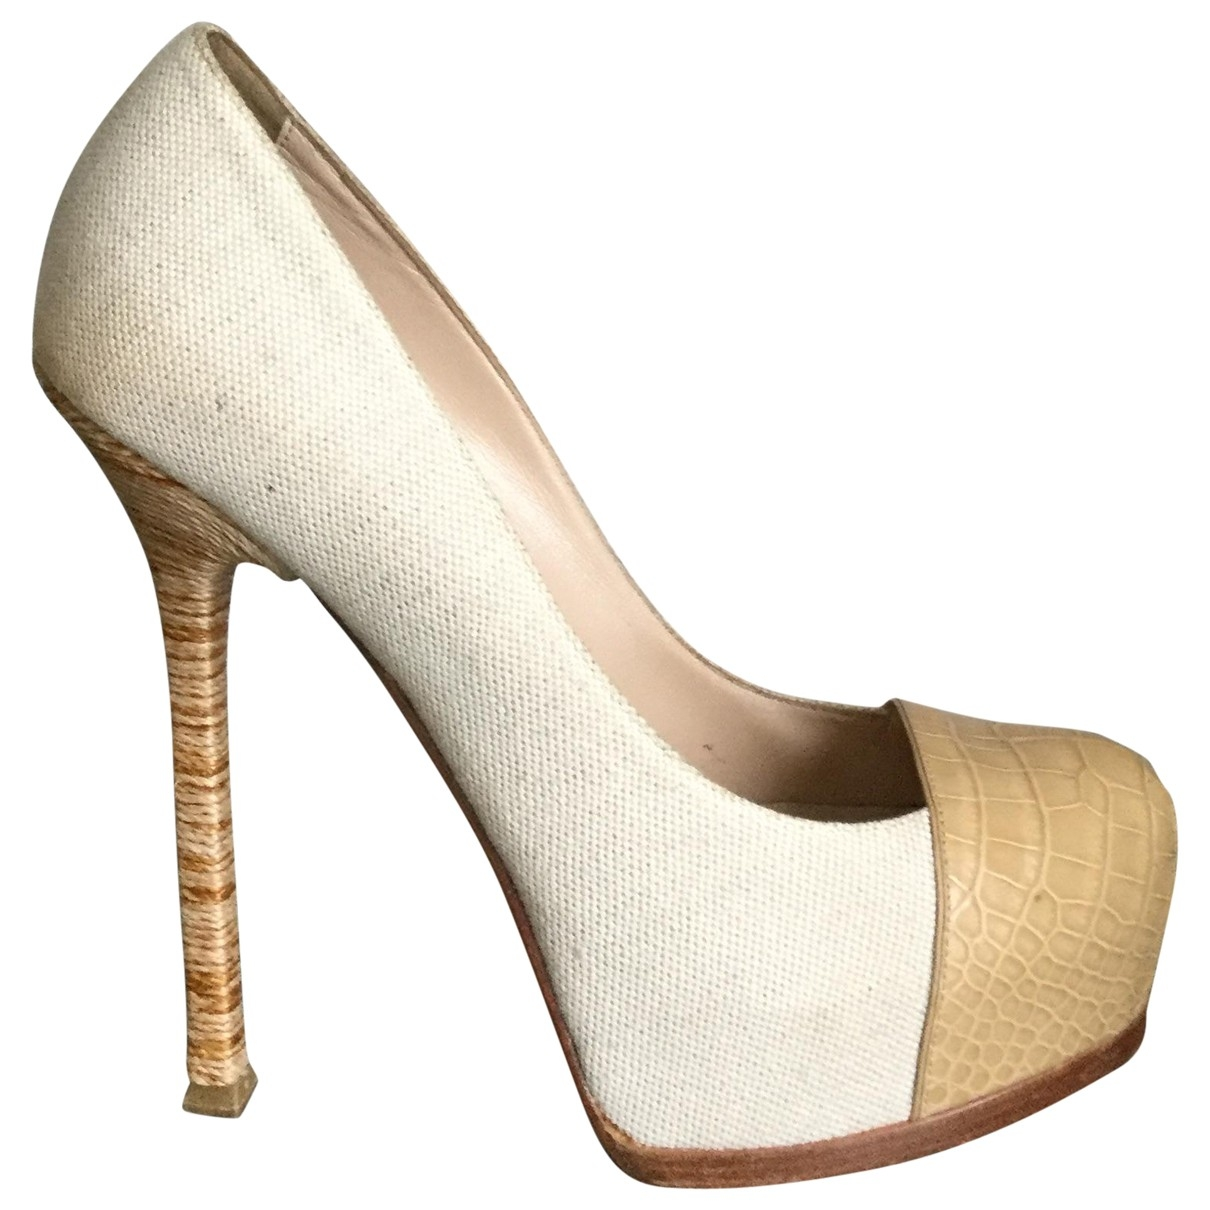 Yves Saint Laurent Trib Too Beige Exotic leathers Heels for Women 39 EU